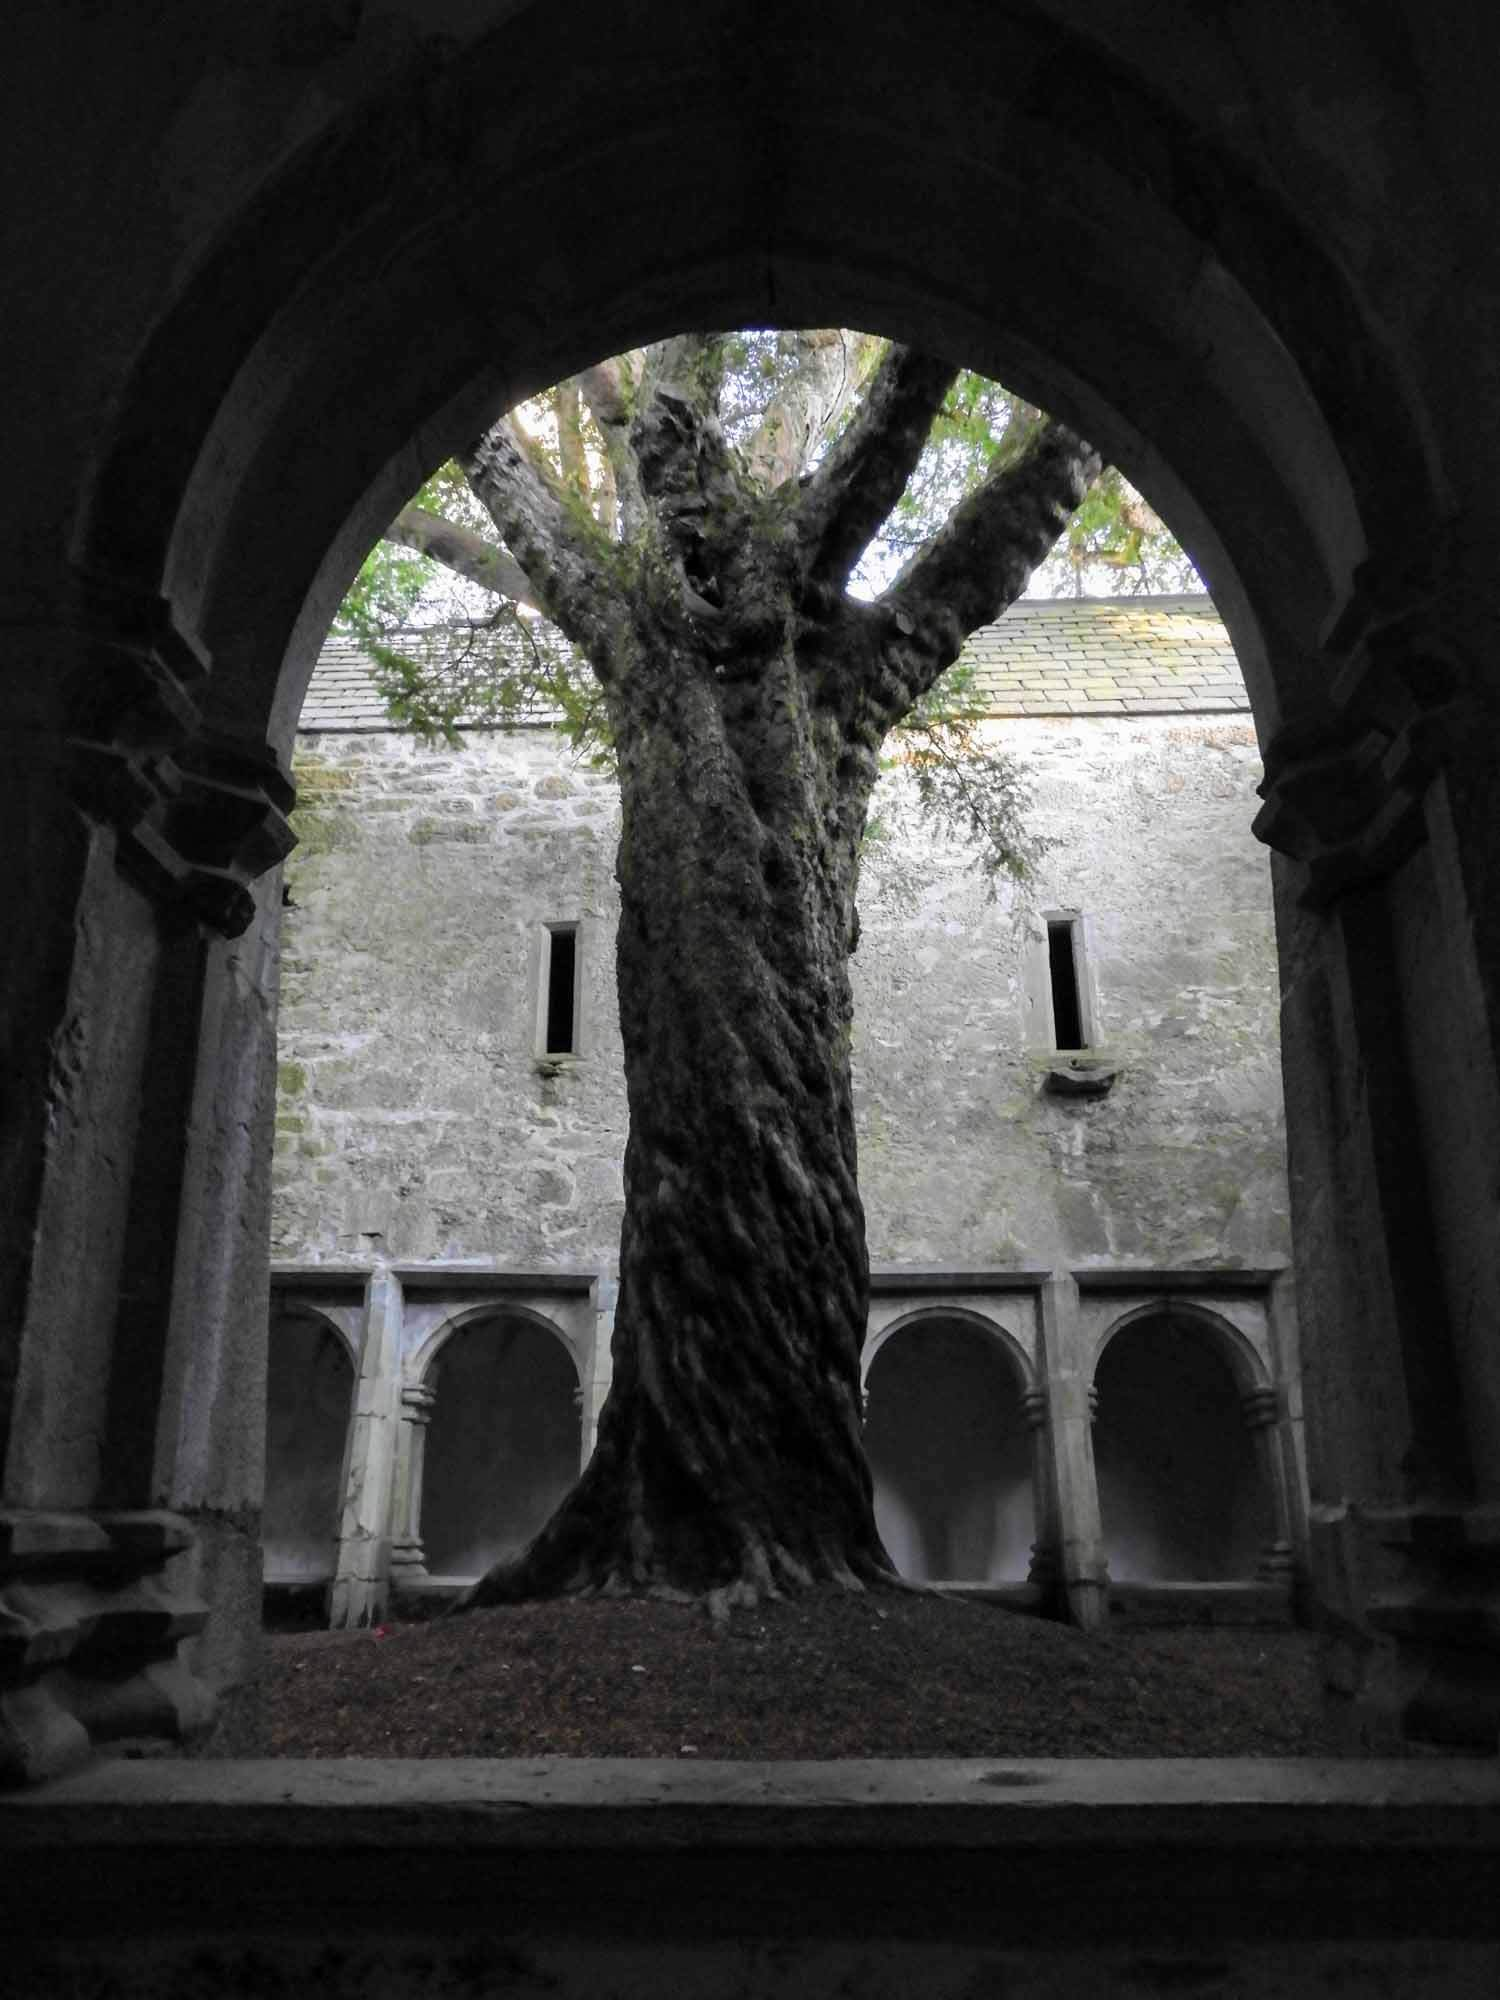 ireland-killarney-muckross-abby-ruins-tree-courtyard.jpg